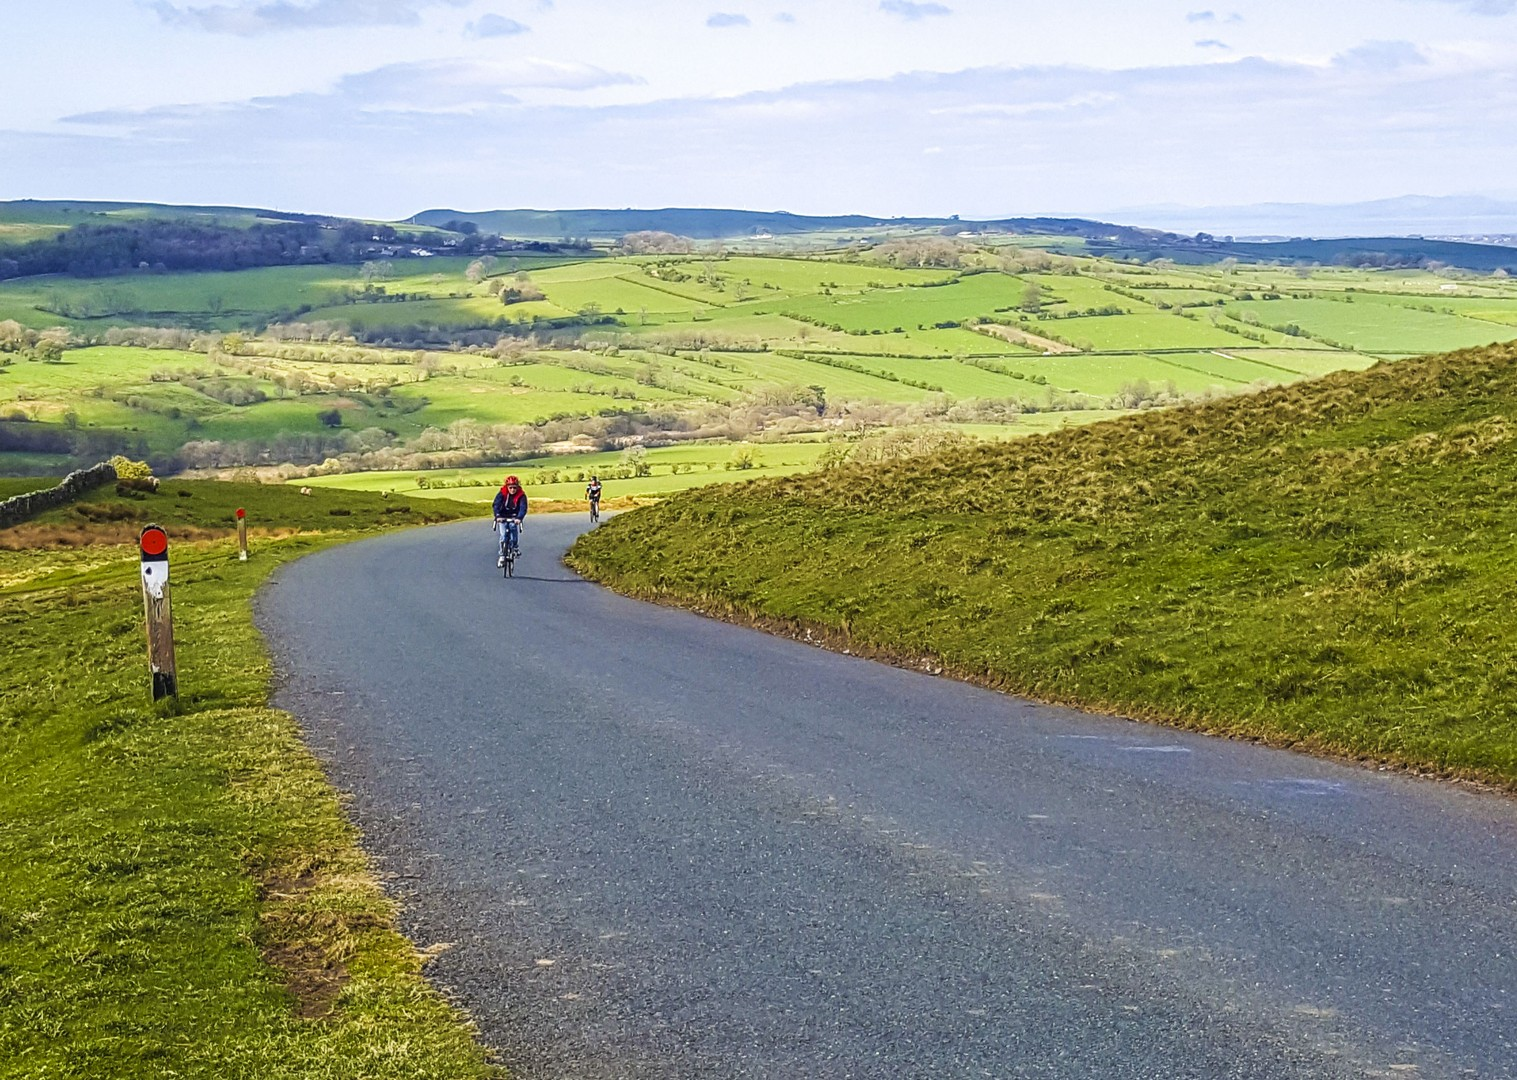 rolling-hills-british-countryside-lake-district-cycling-holiday-roads-skedaddle.jpg - UK - Lake District - Derwent Water - Guided Leisure Cycling Holiday - Leisure Cycling